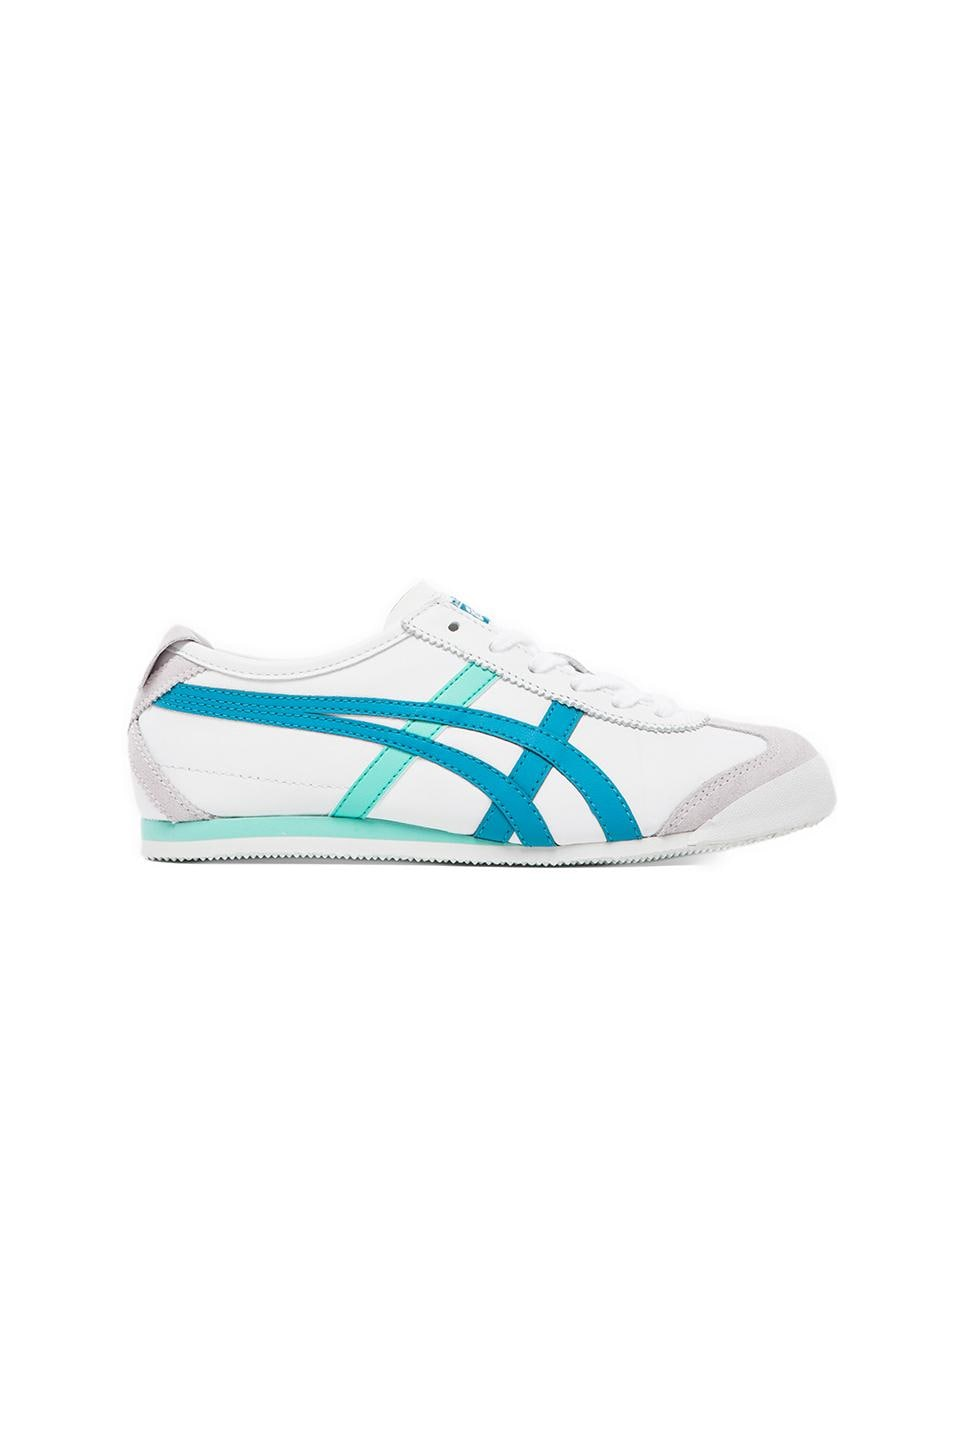 Onitsuka Tiger Mexico 66 Sneaker in White/Ocean Blue